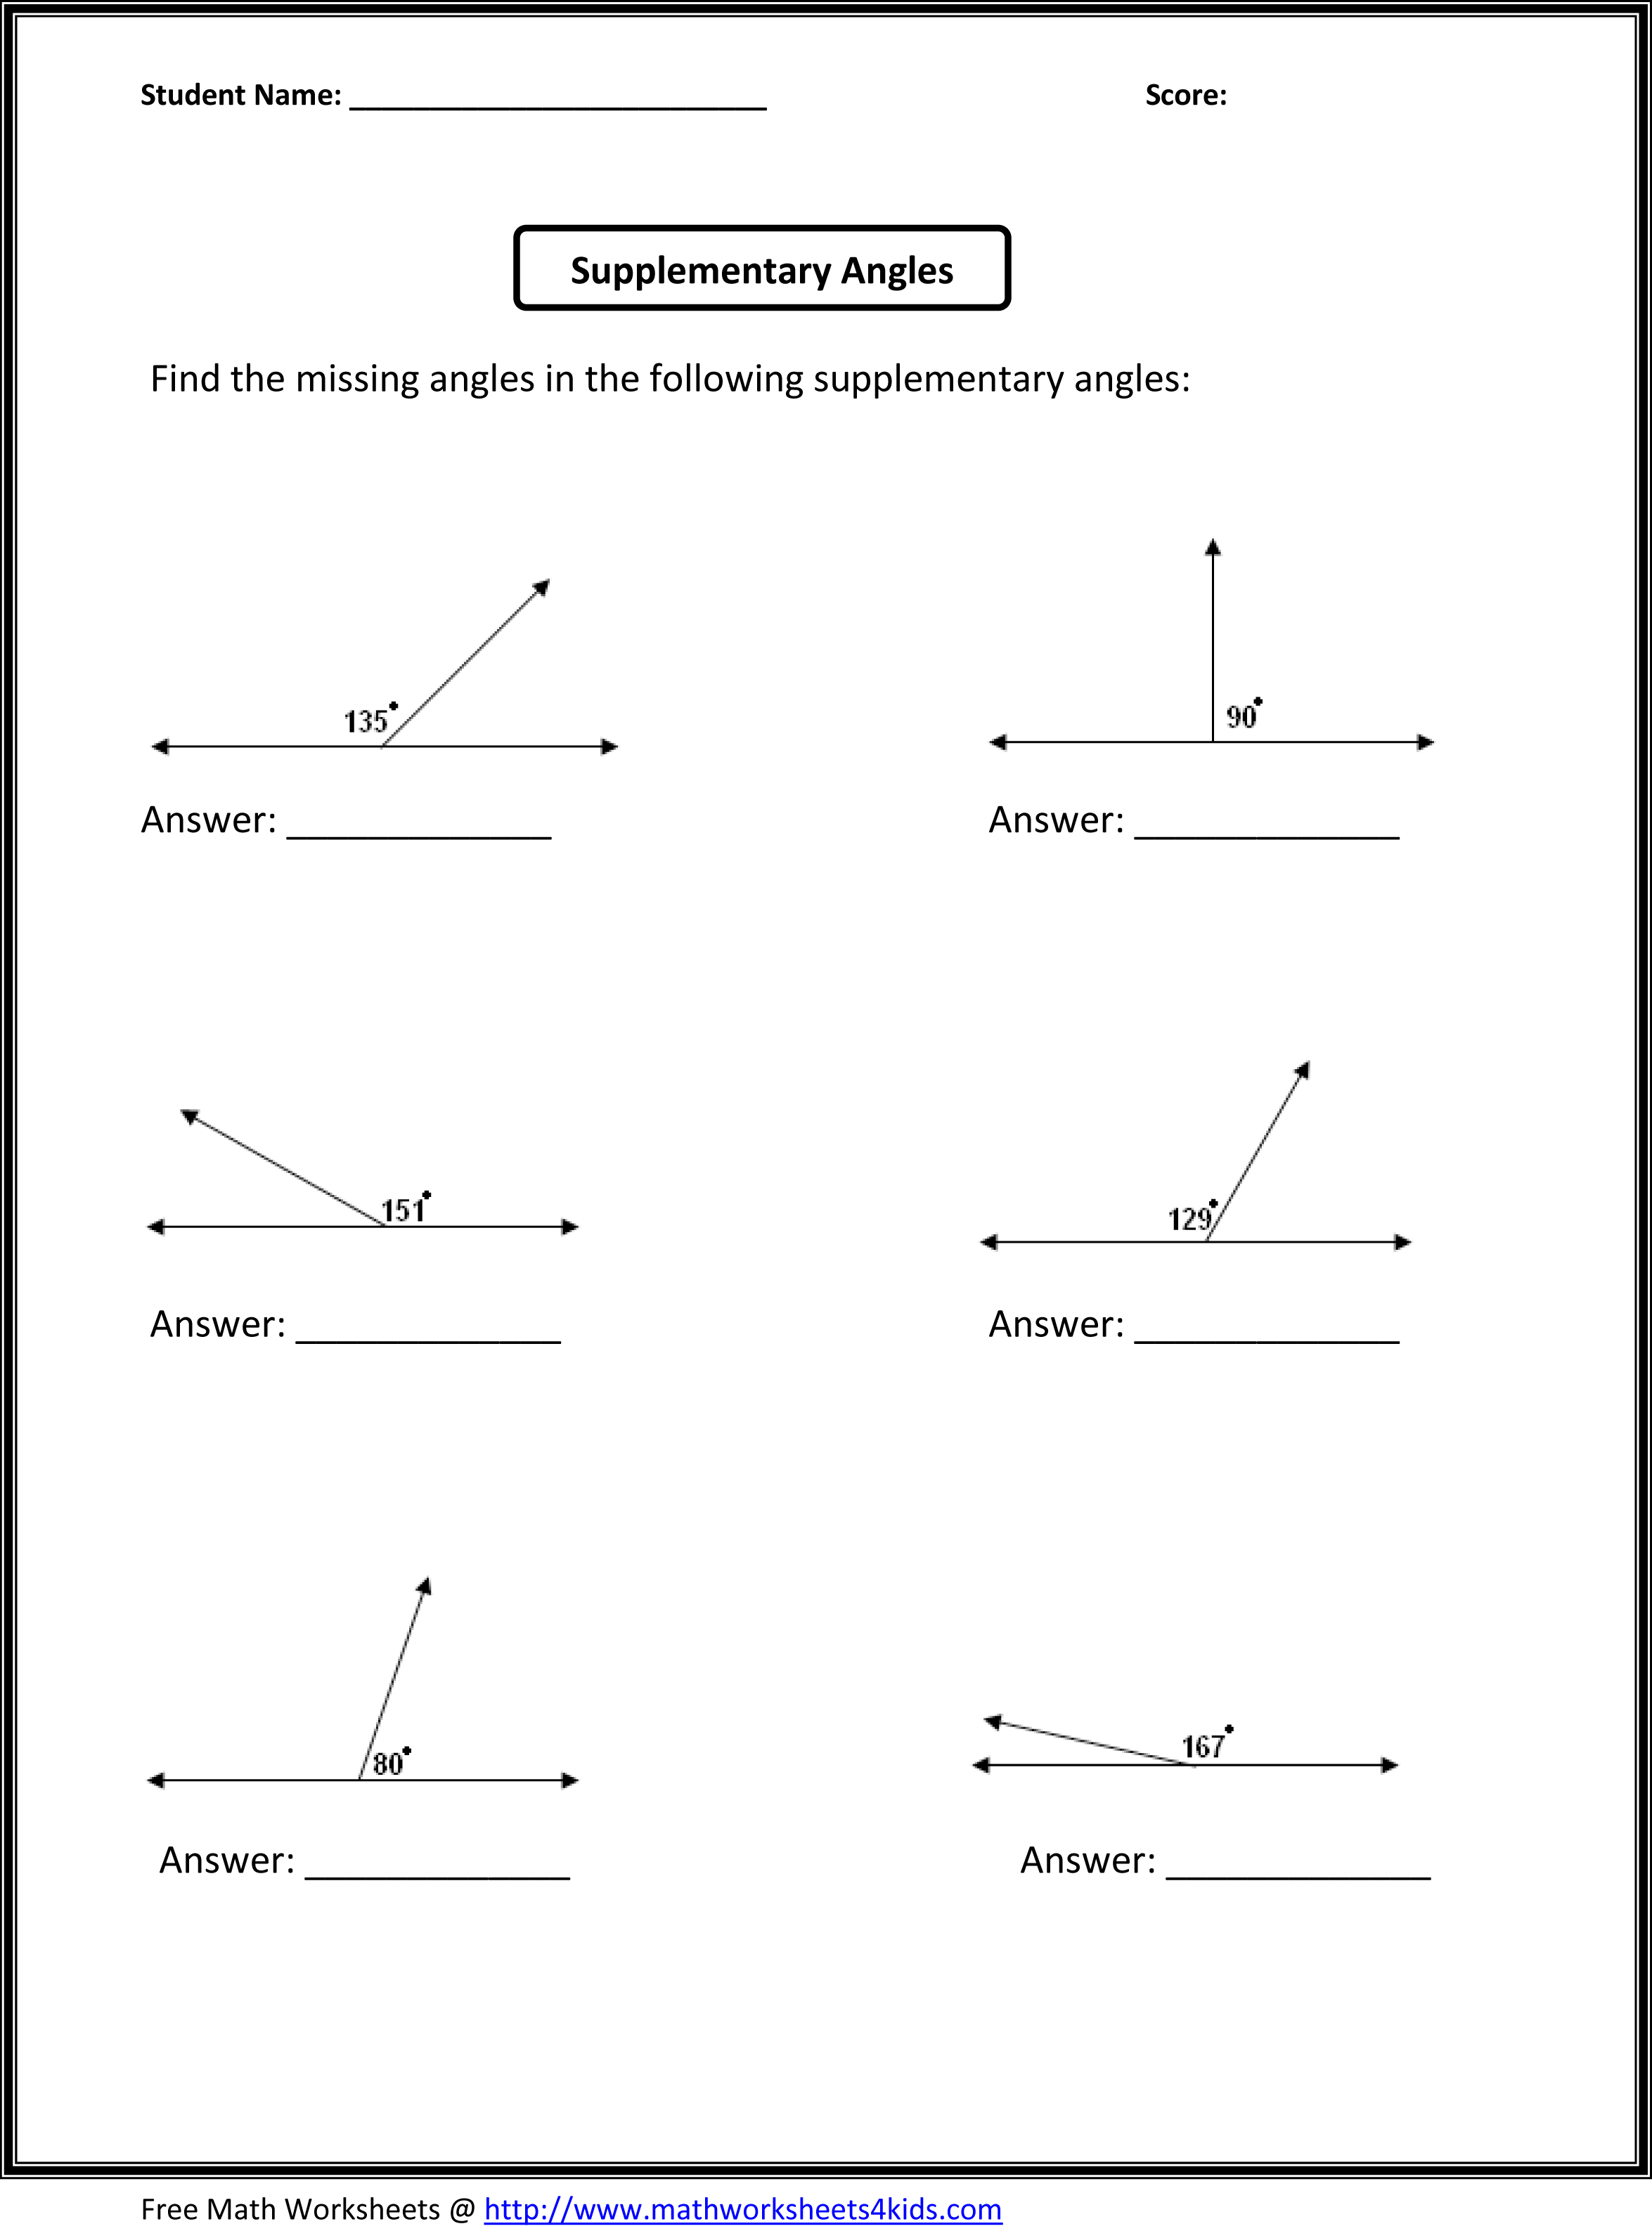 Worksheets Geometry Math Worksheets worksheet 612792 maths geometry worksheets math pdf worksheets